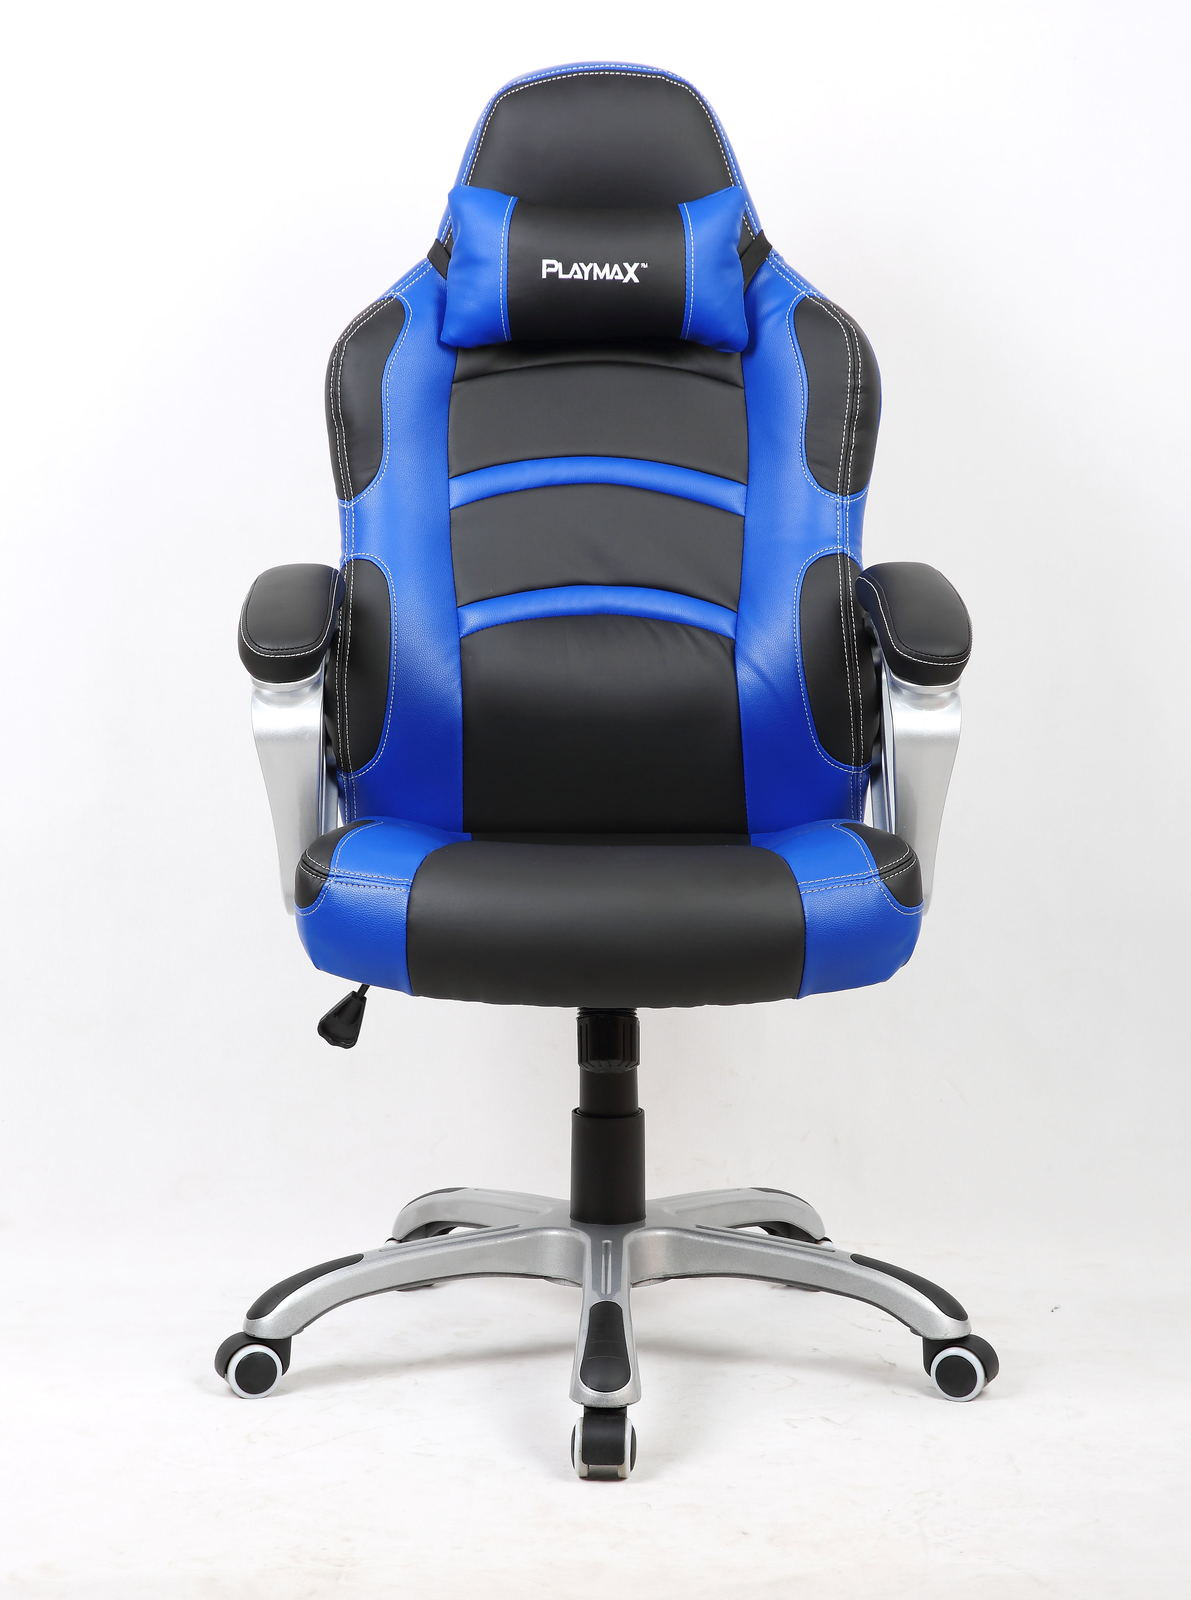 Banana game chair -  Playmax Gaming Chair Blue And Black For Image